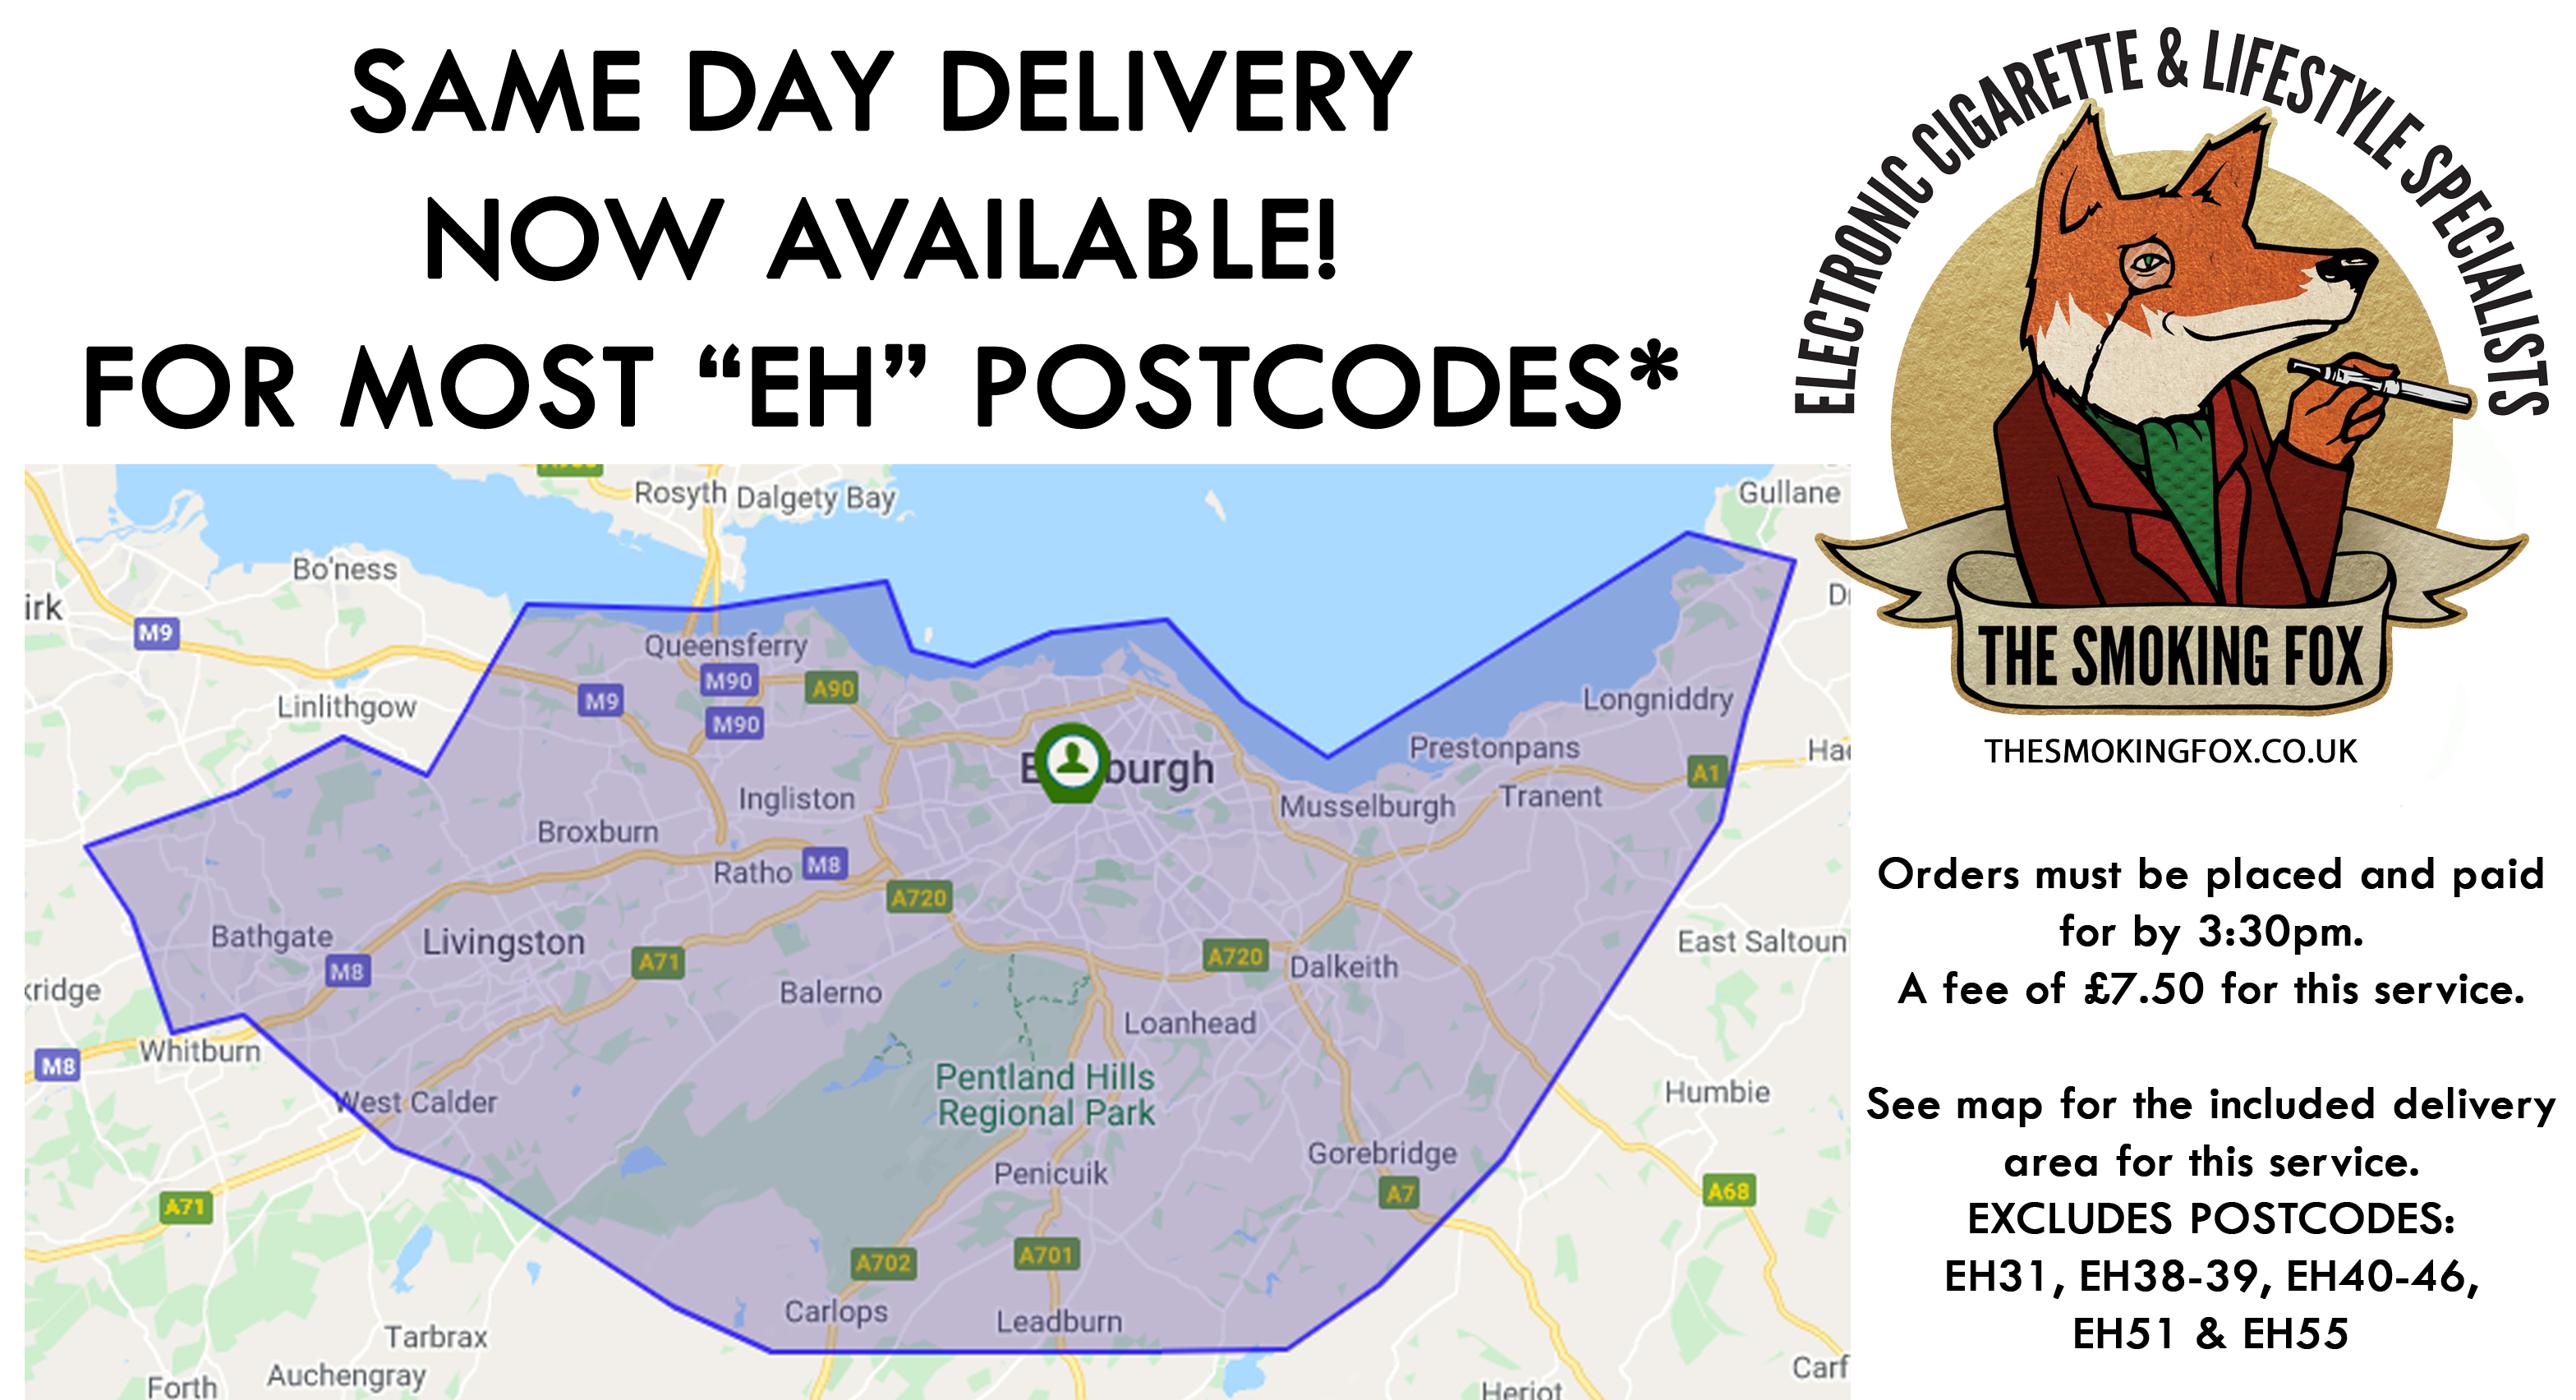 Same Day Deliveries